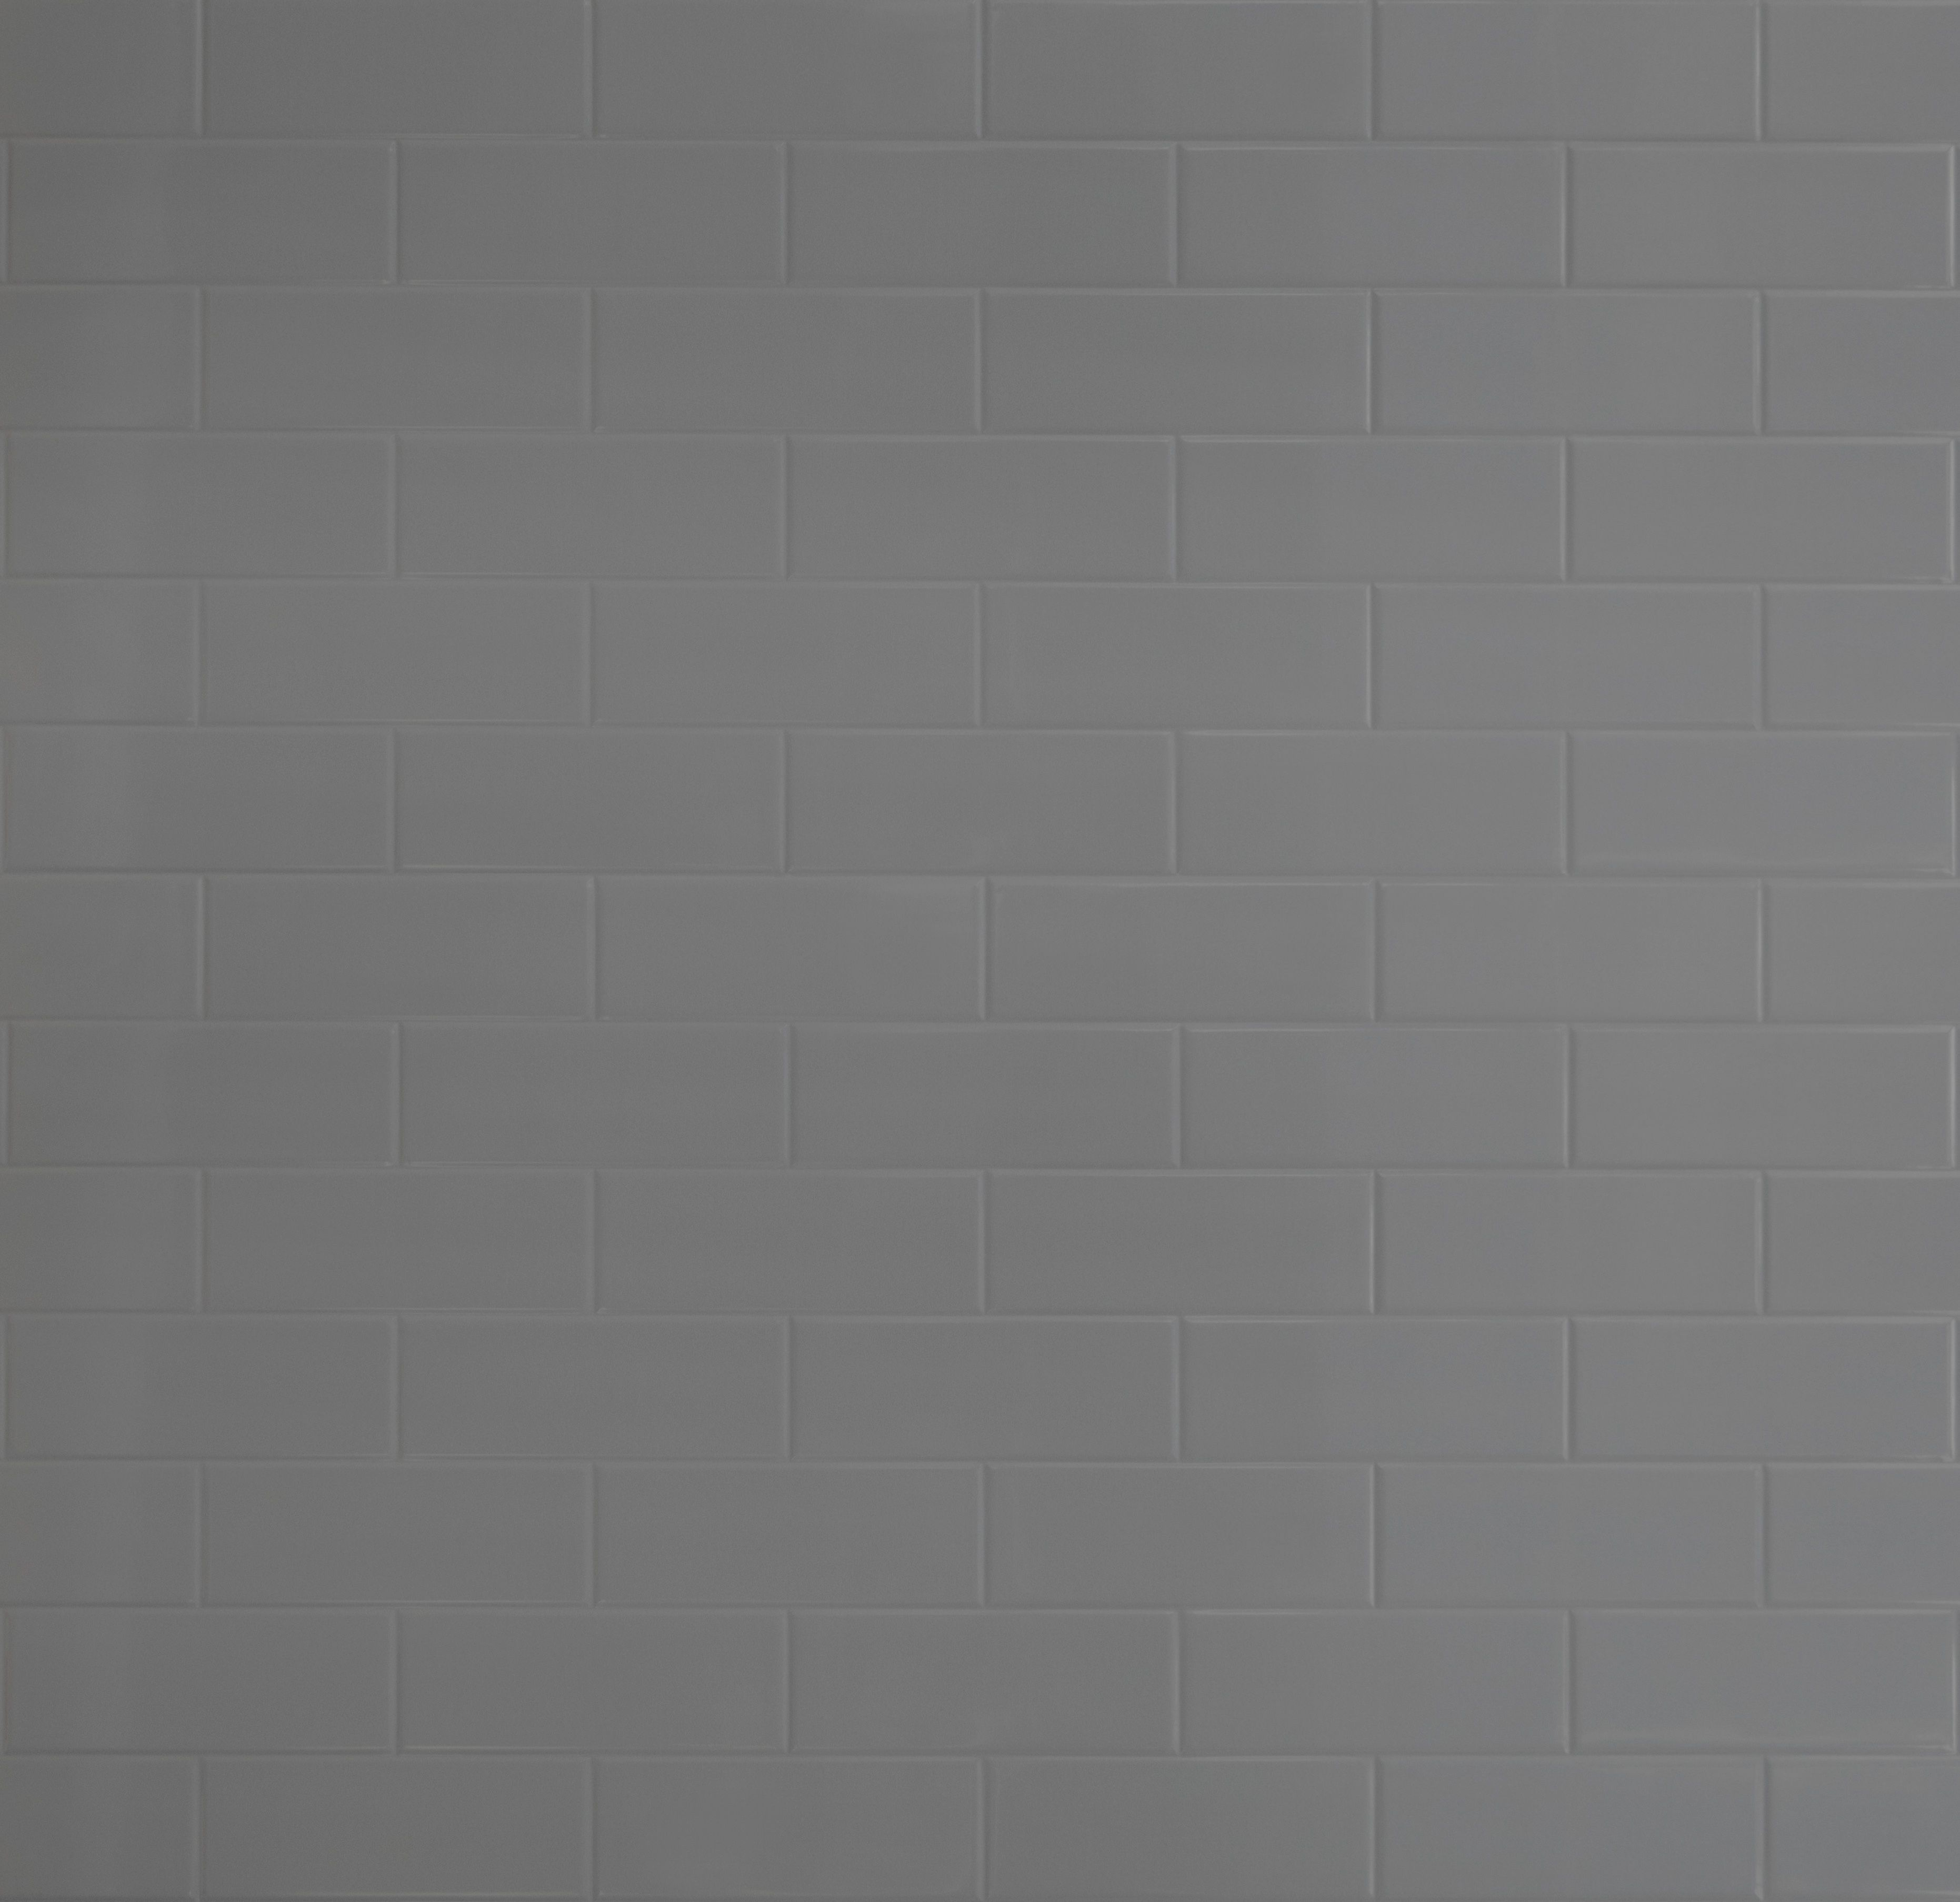 New - Grey Brick Tile panel. Inspired by iconic tile ...